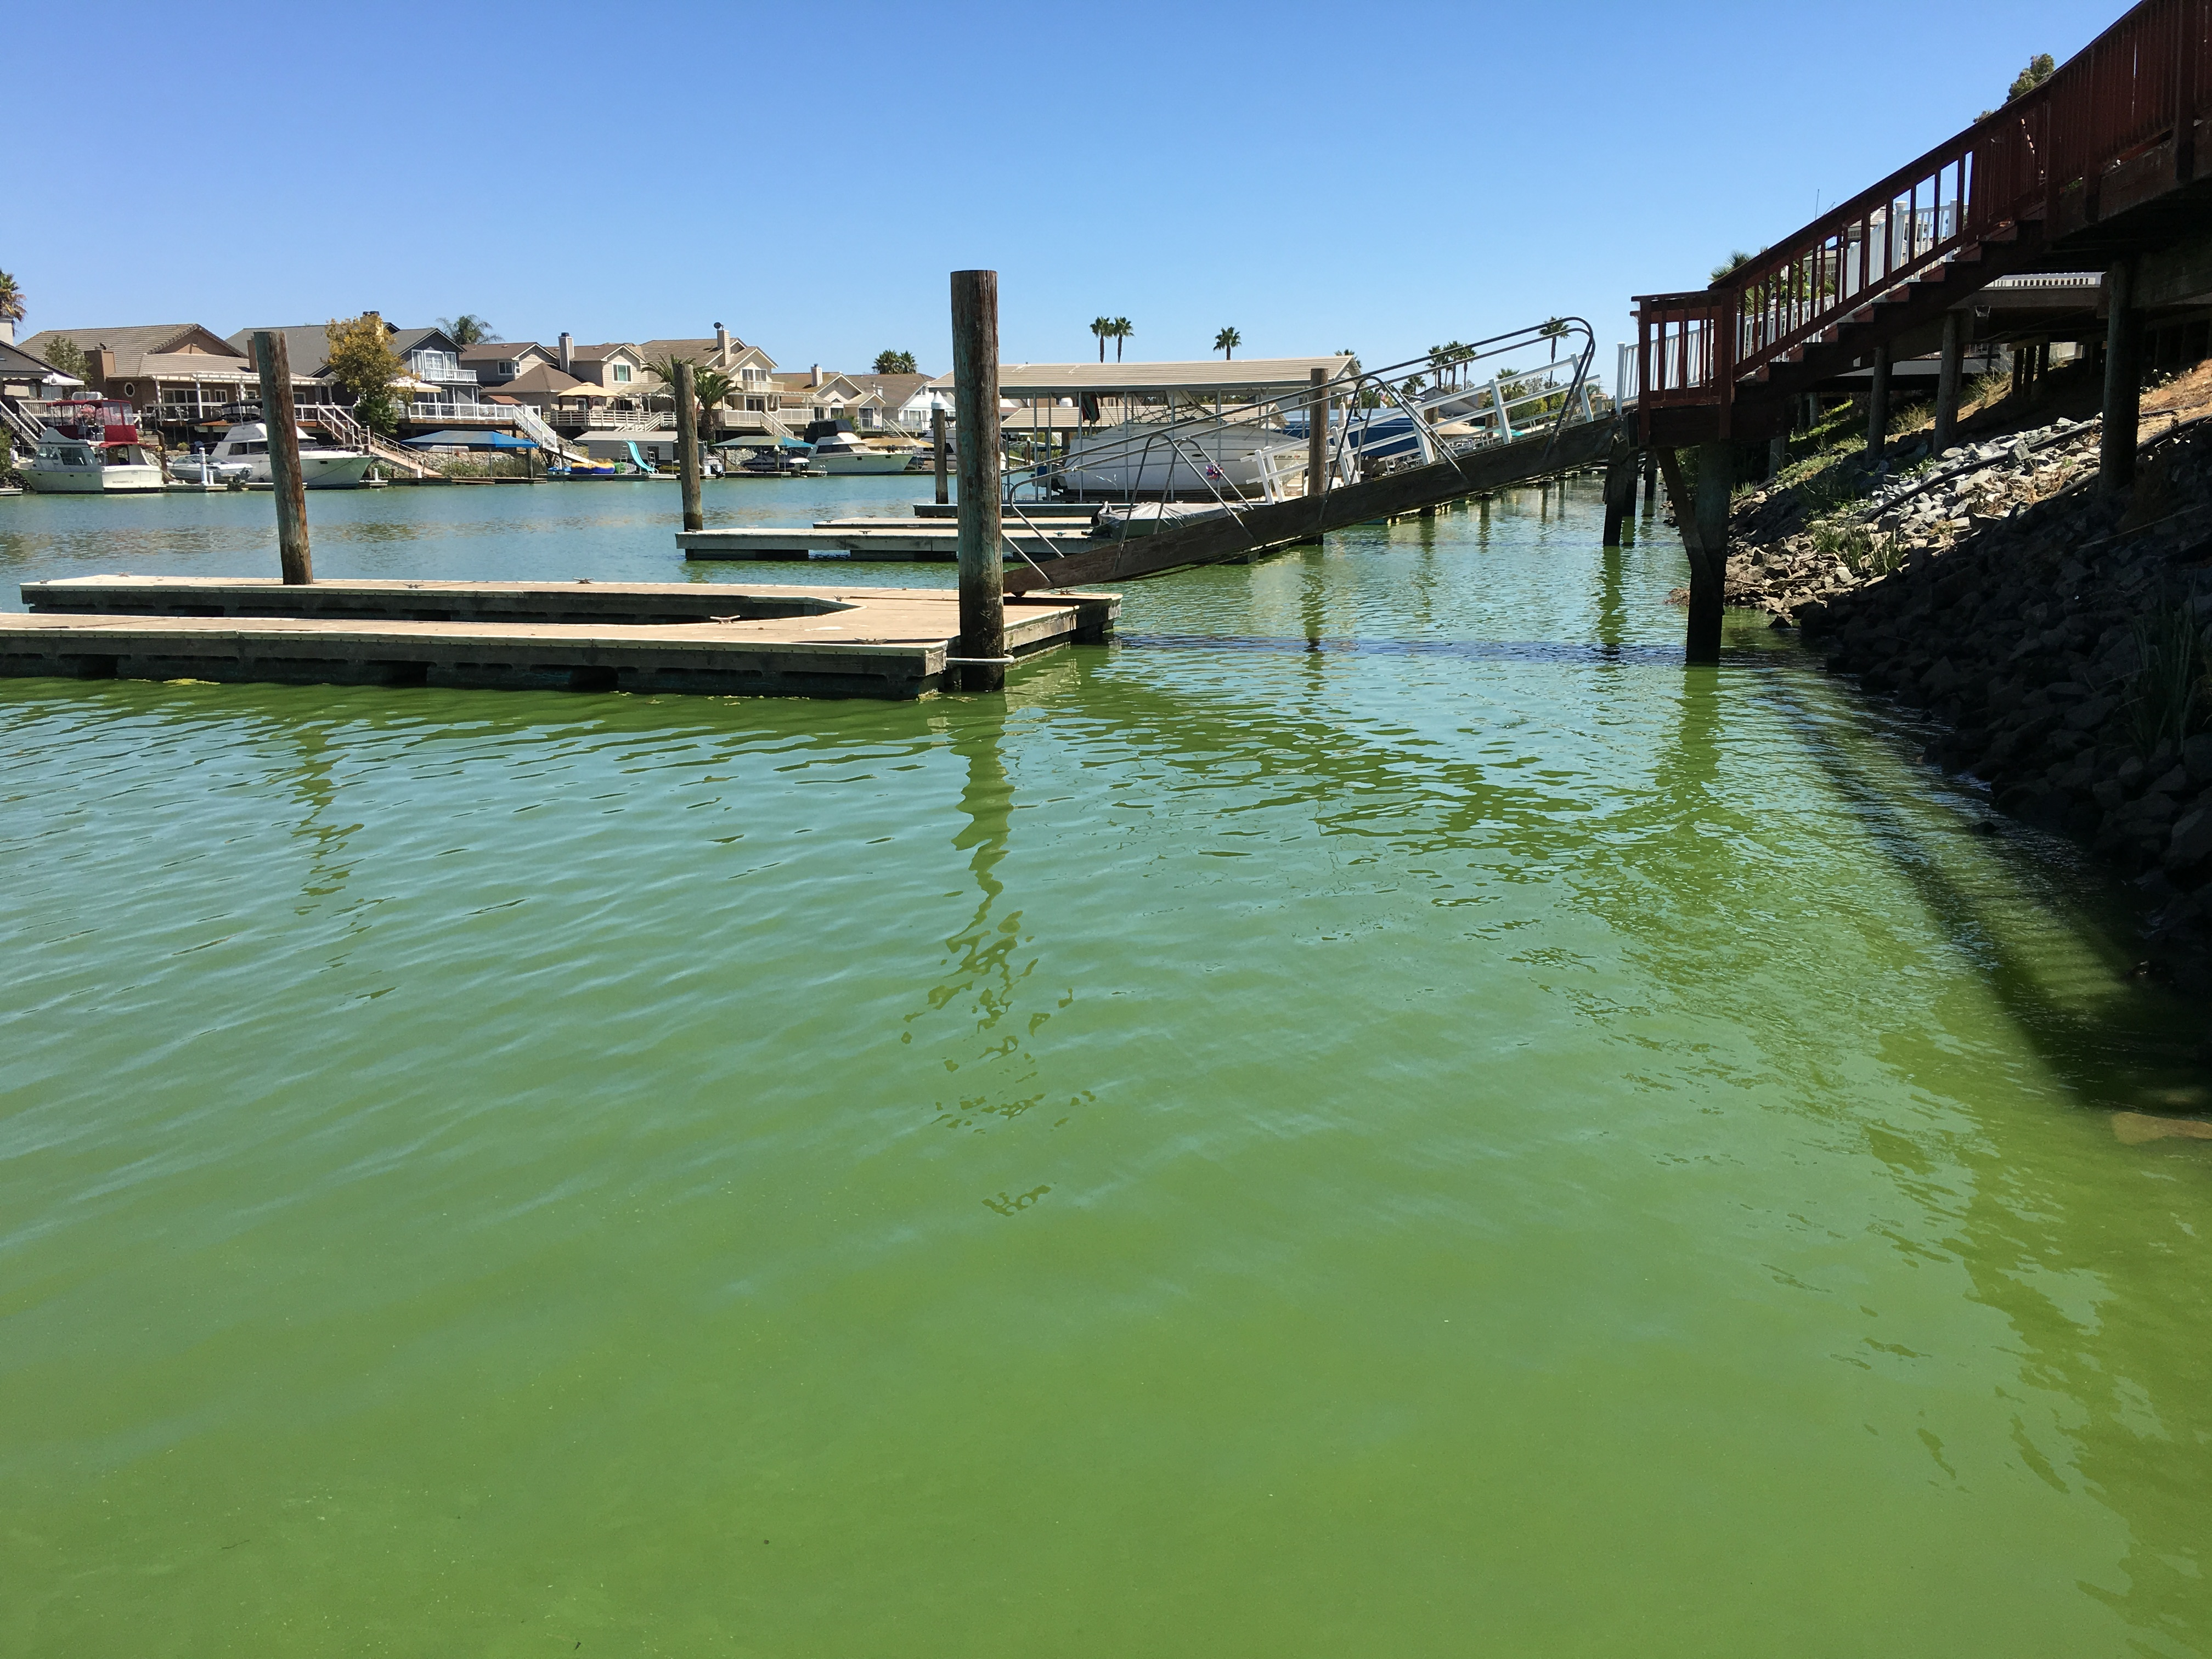 The docks behind homes at Discovery Bay are quieter than usual due to fears of blue green algae toxins.